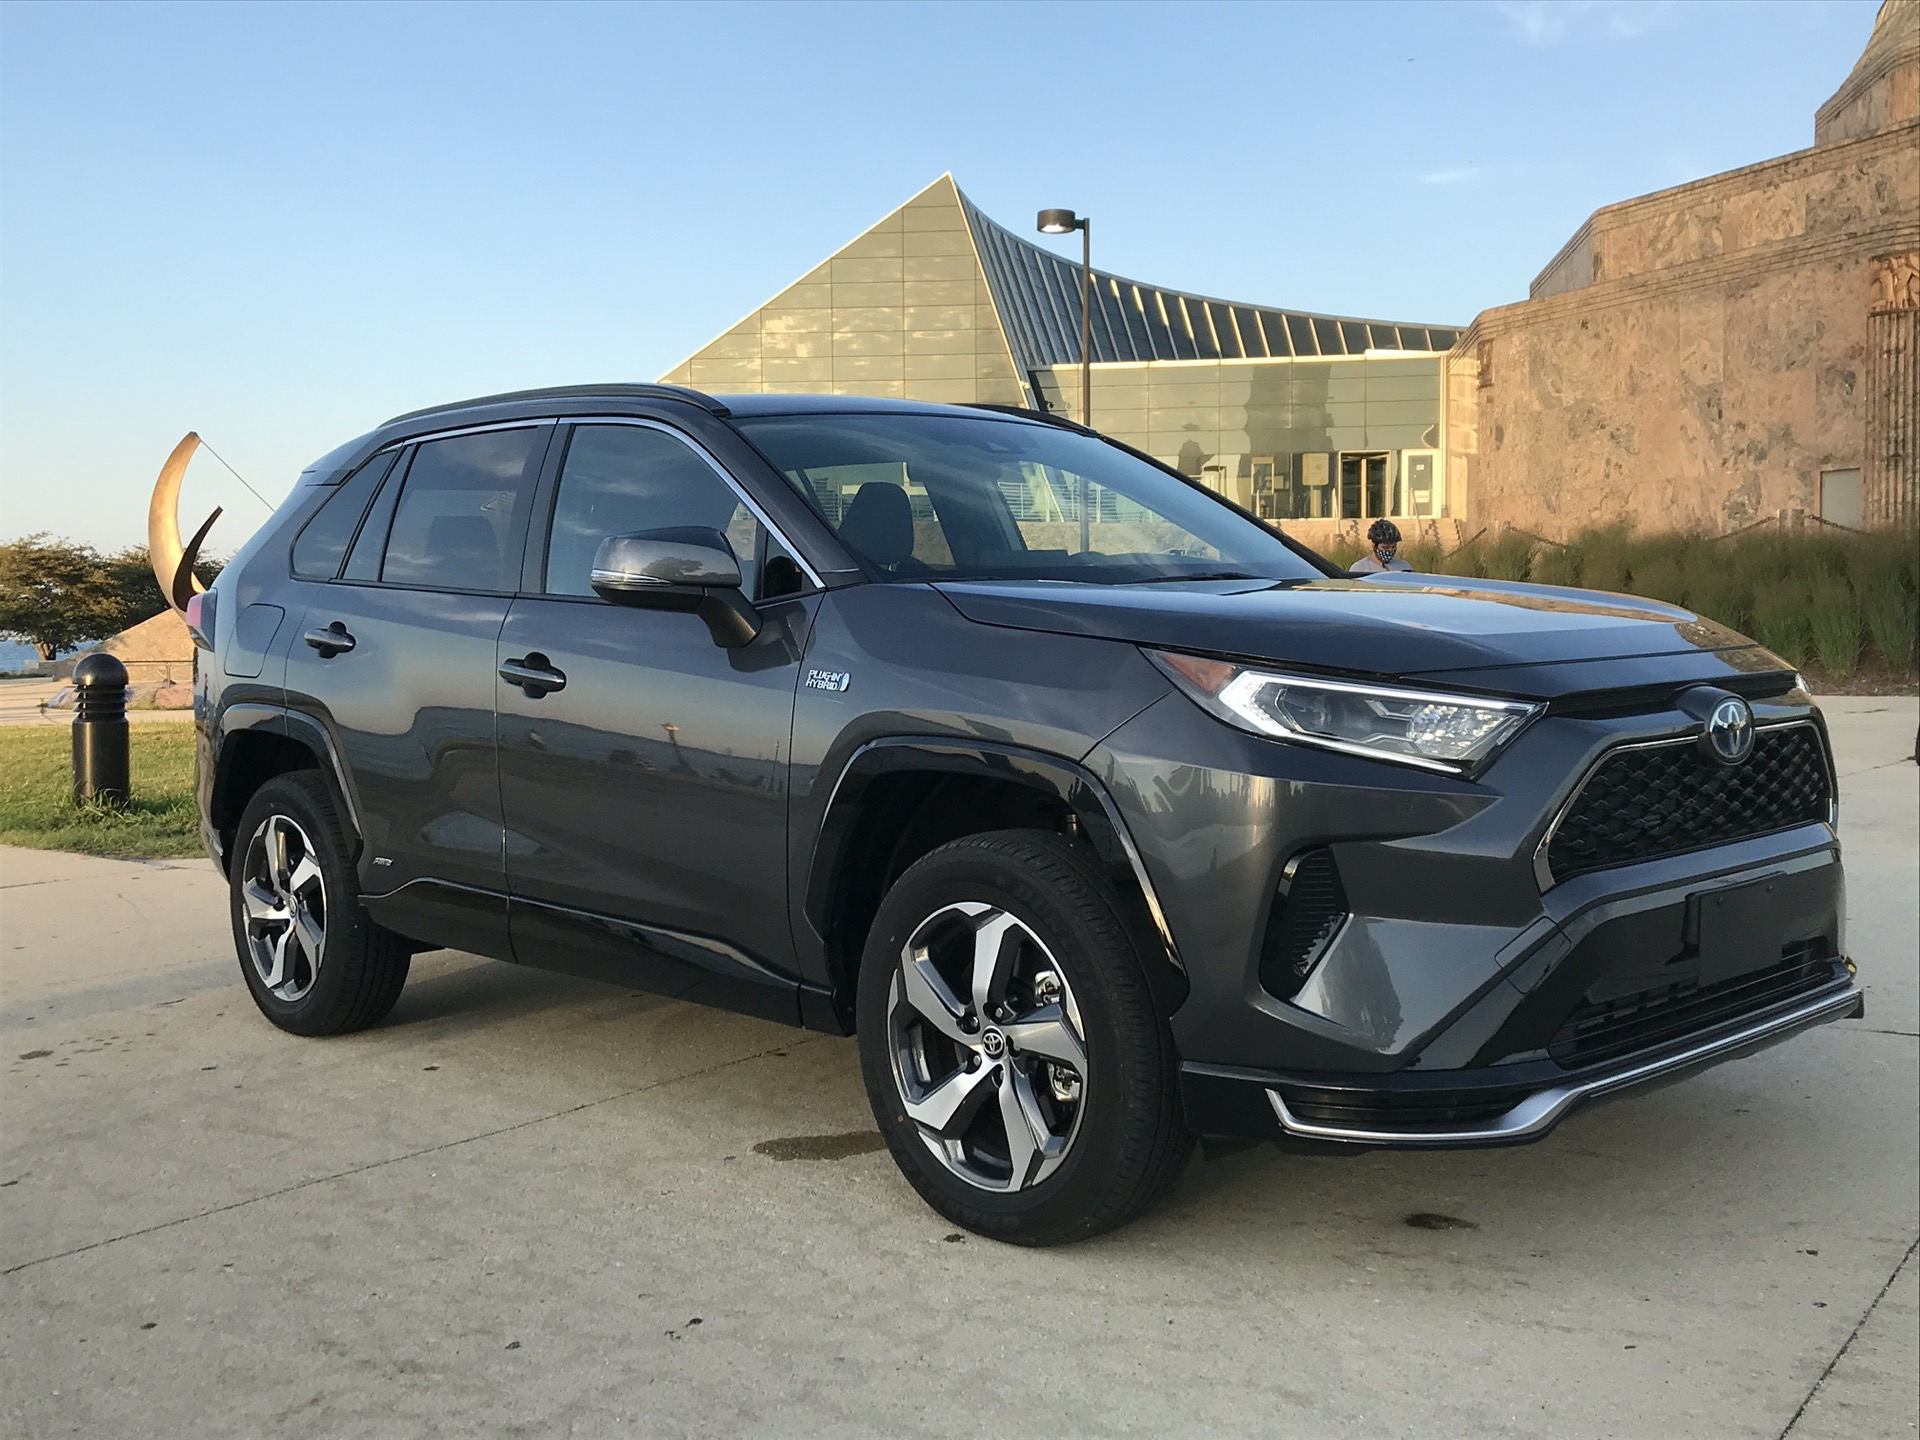 New And Used Toyota Rav4 Prices Photos Reviews Specs The Car Connection